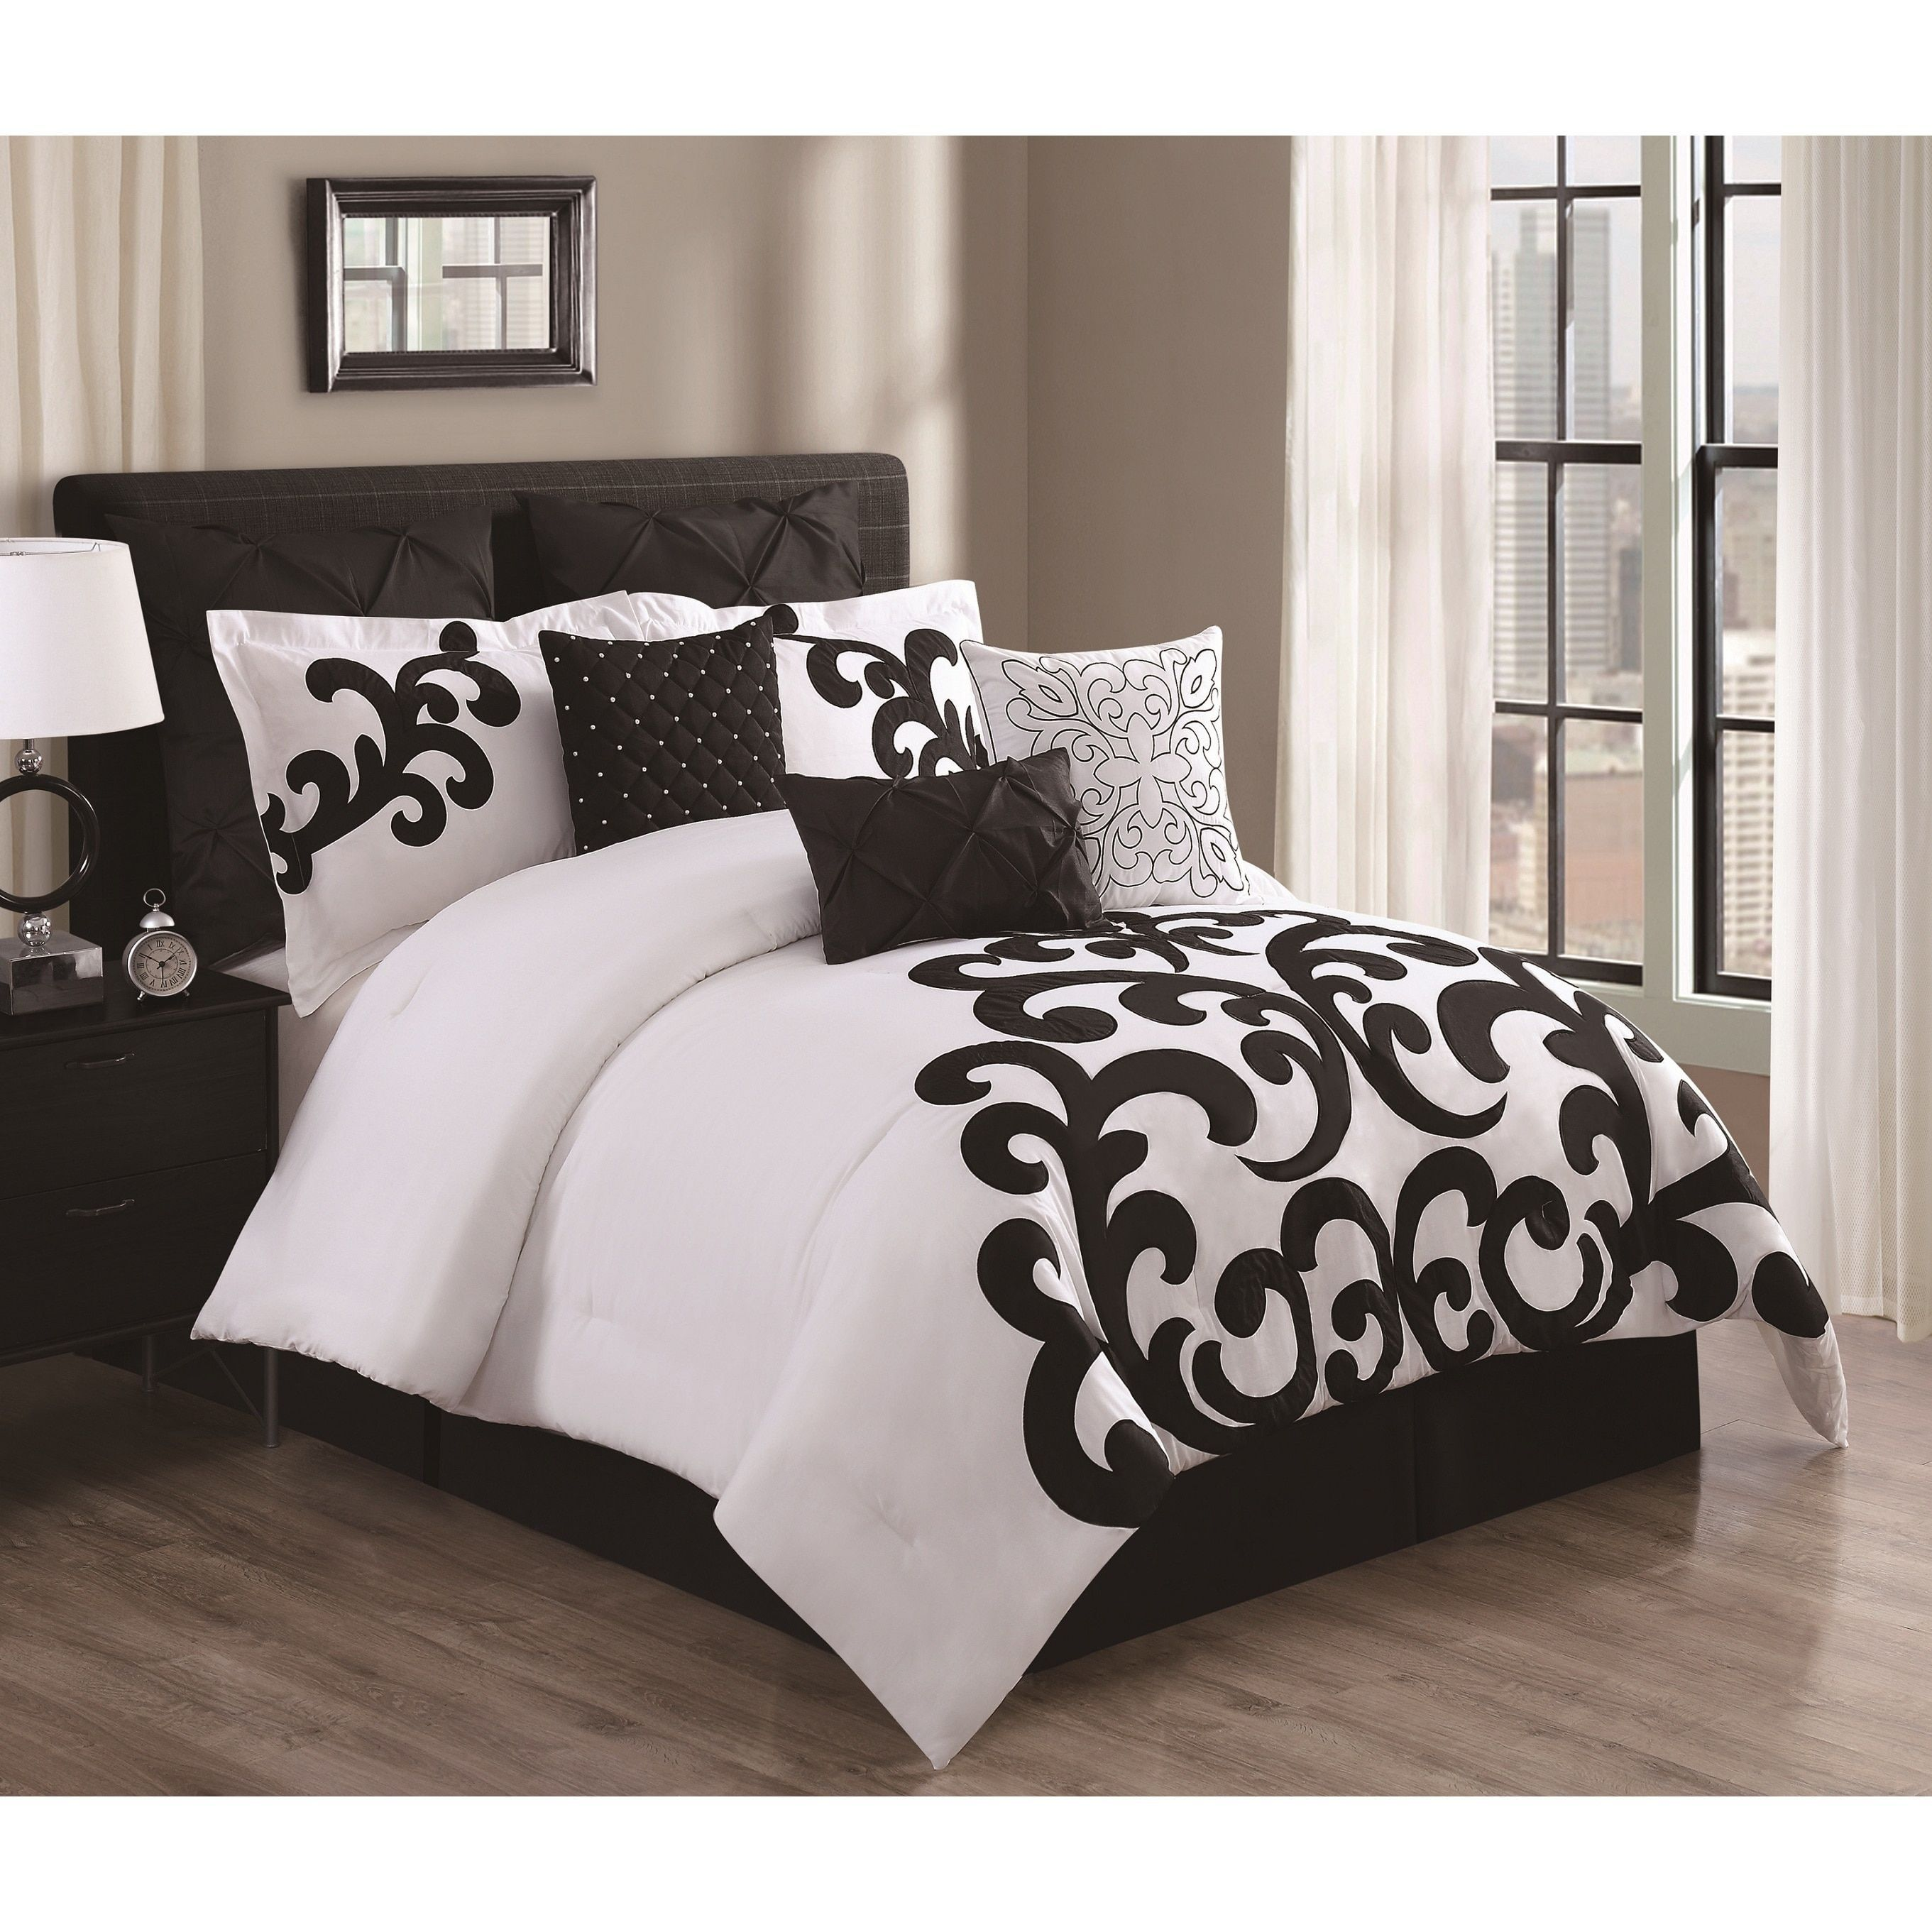 Empress Black And White Cotton 9 Piece Comforter Set Queen